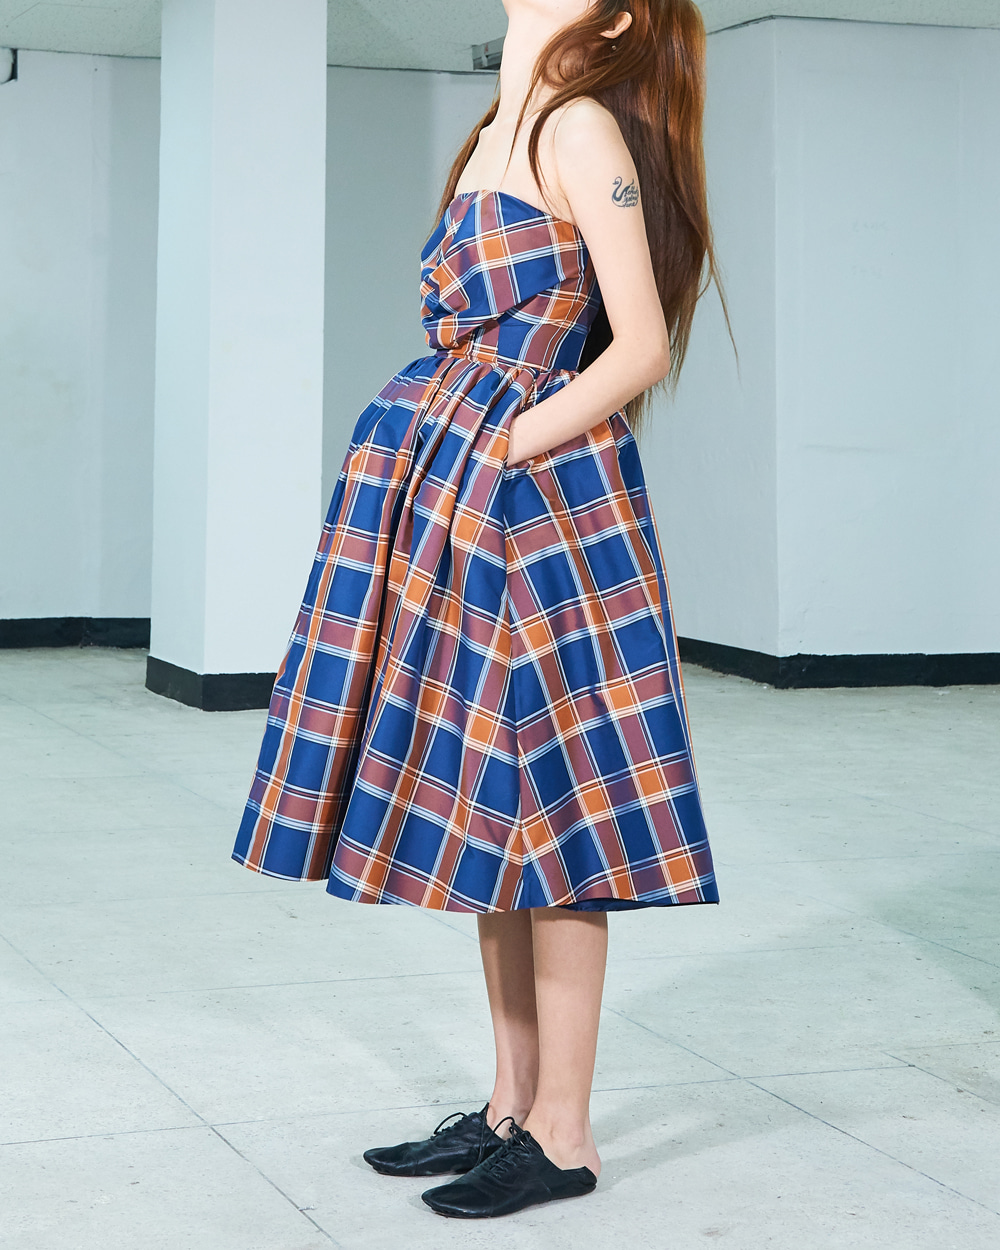 PF19 CREASES TUBE DRESS